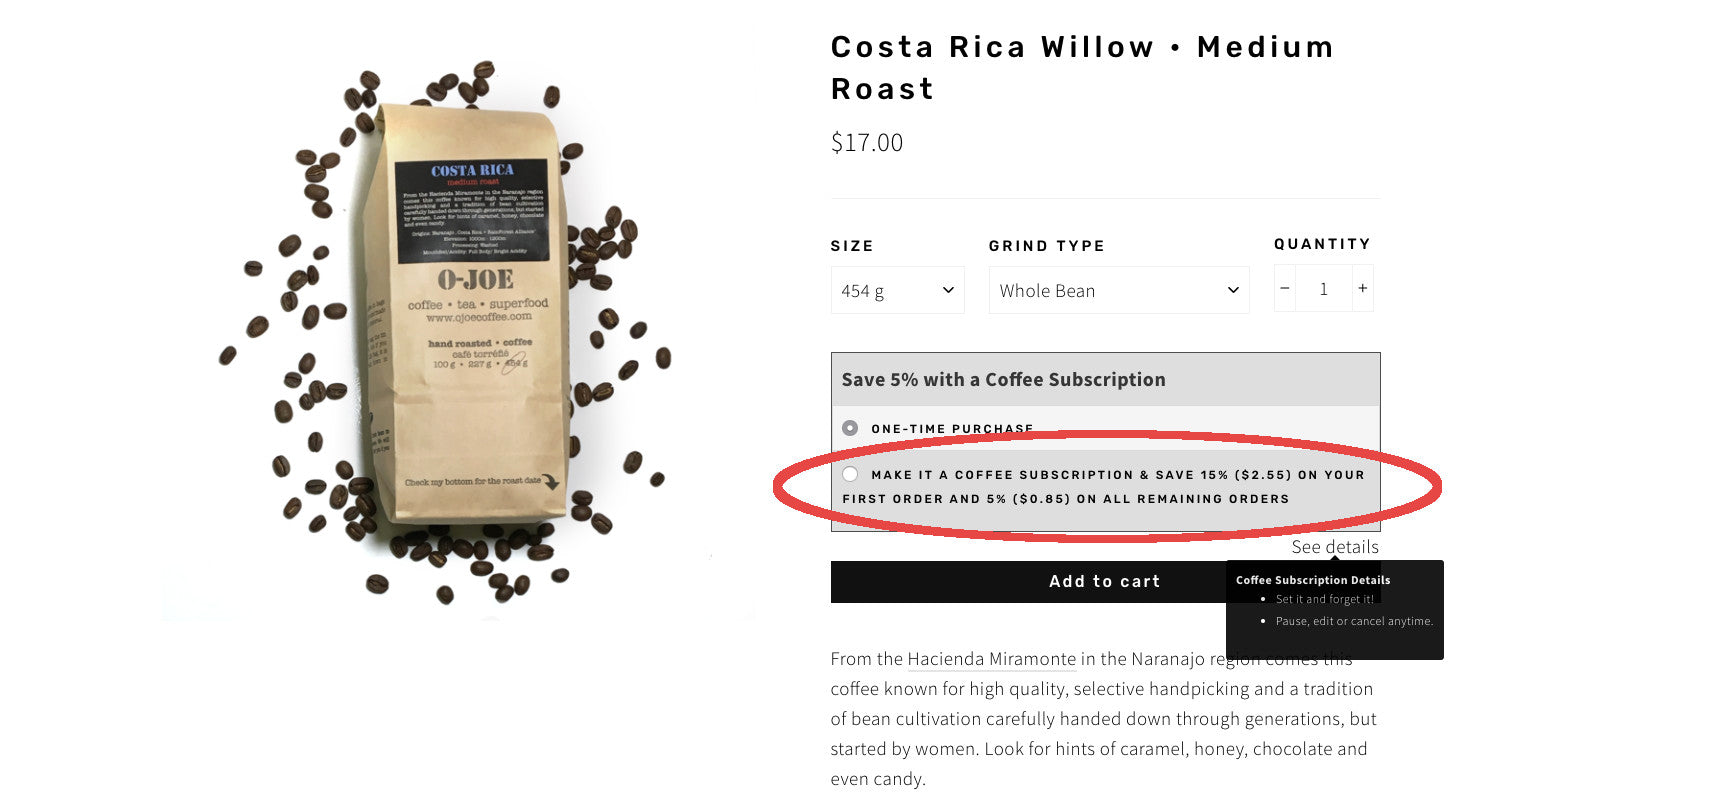 OJoe Coffee Subscription Instructions